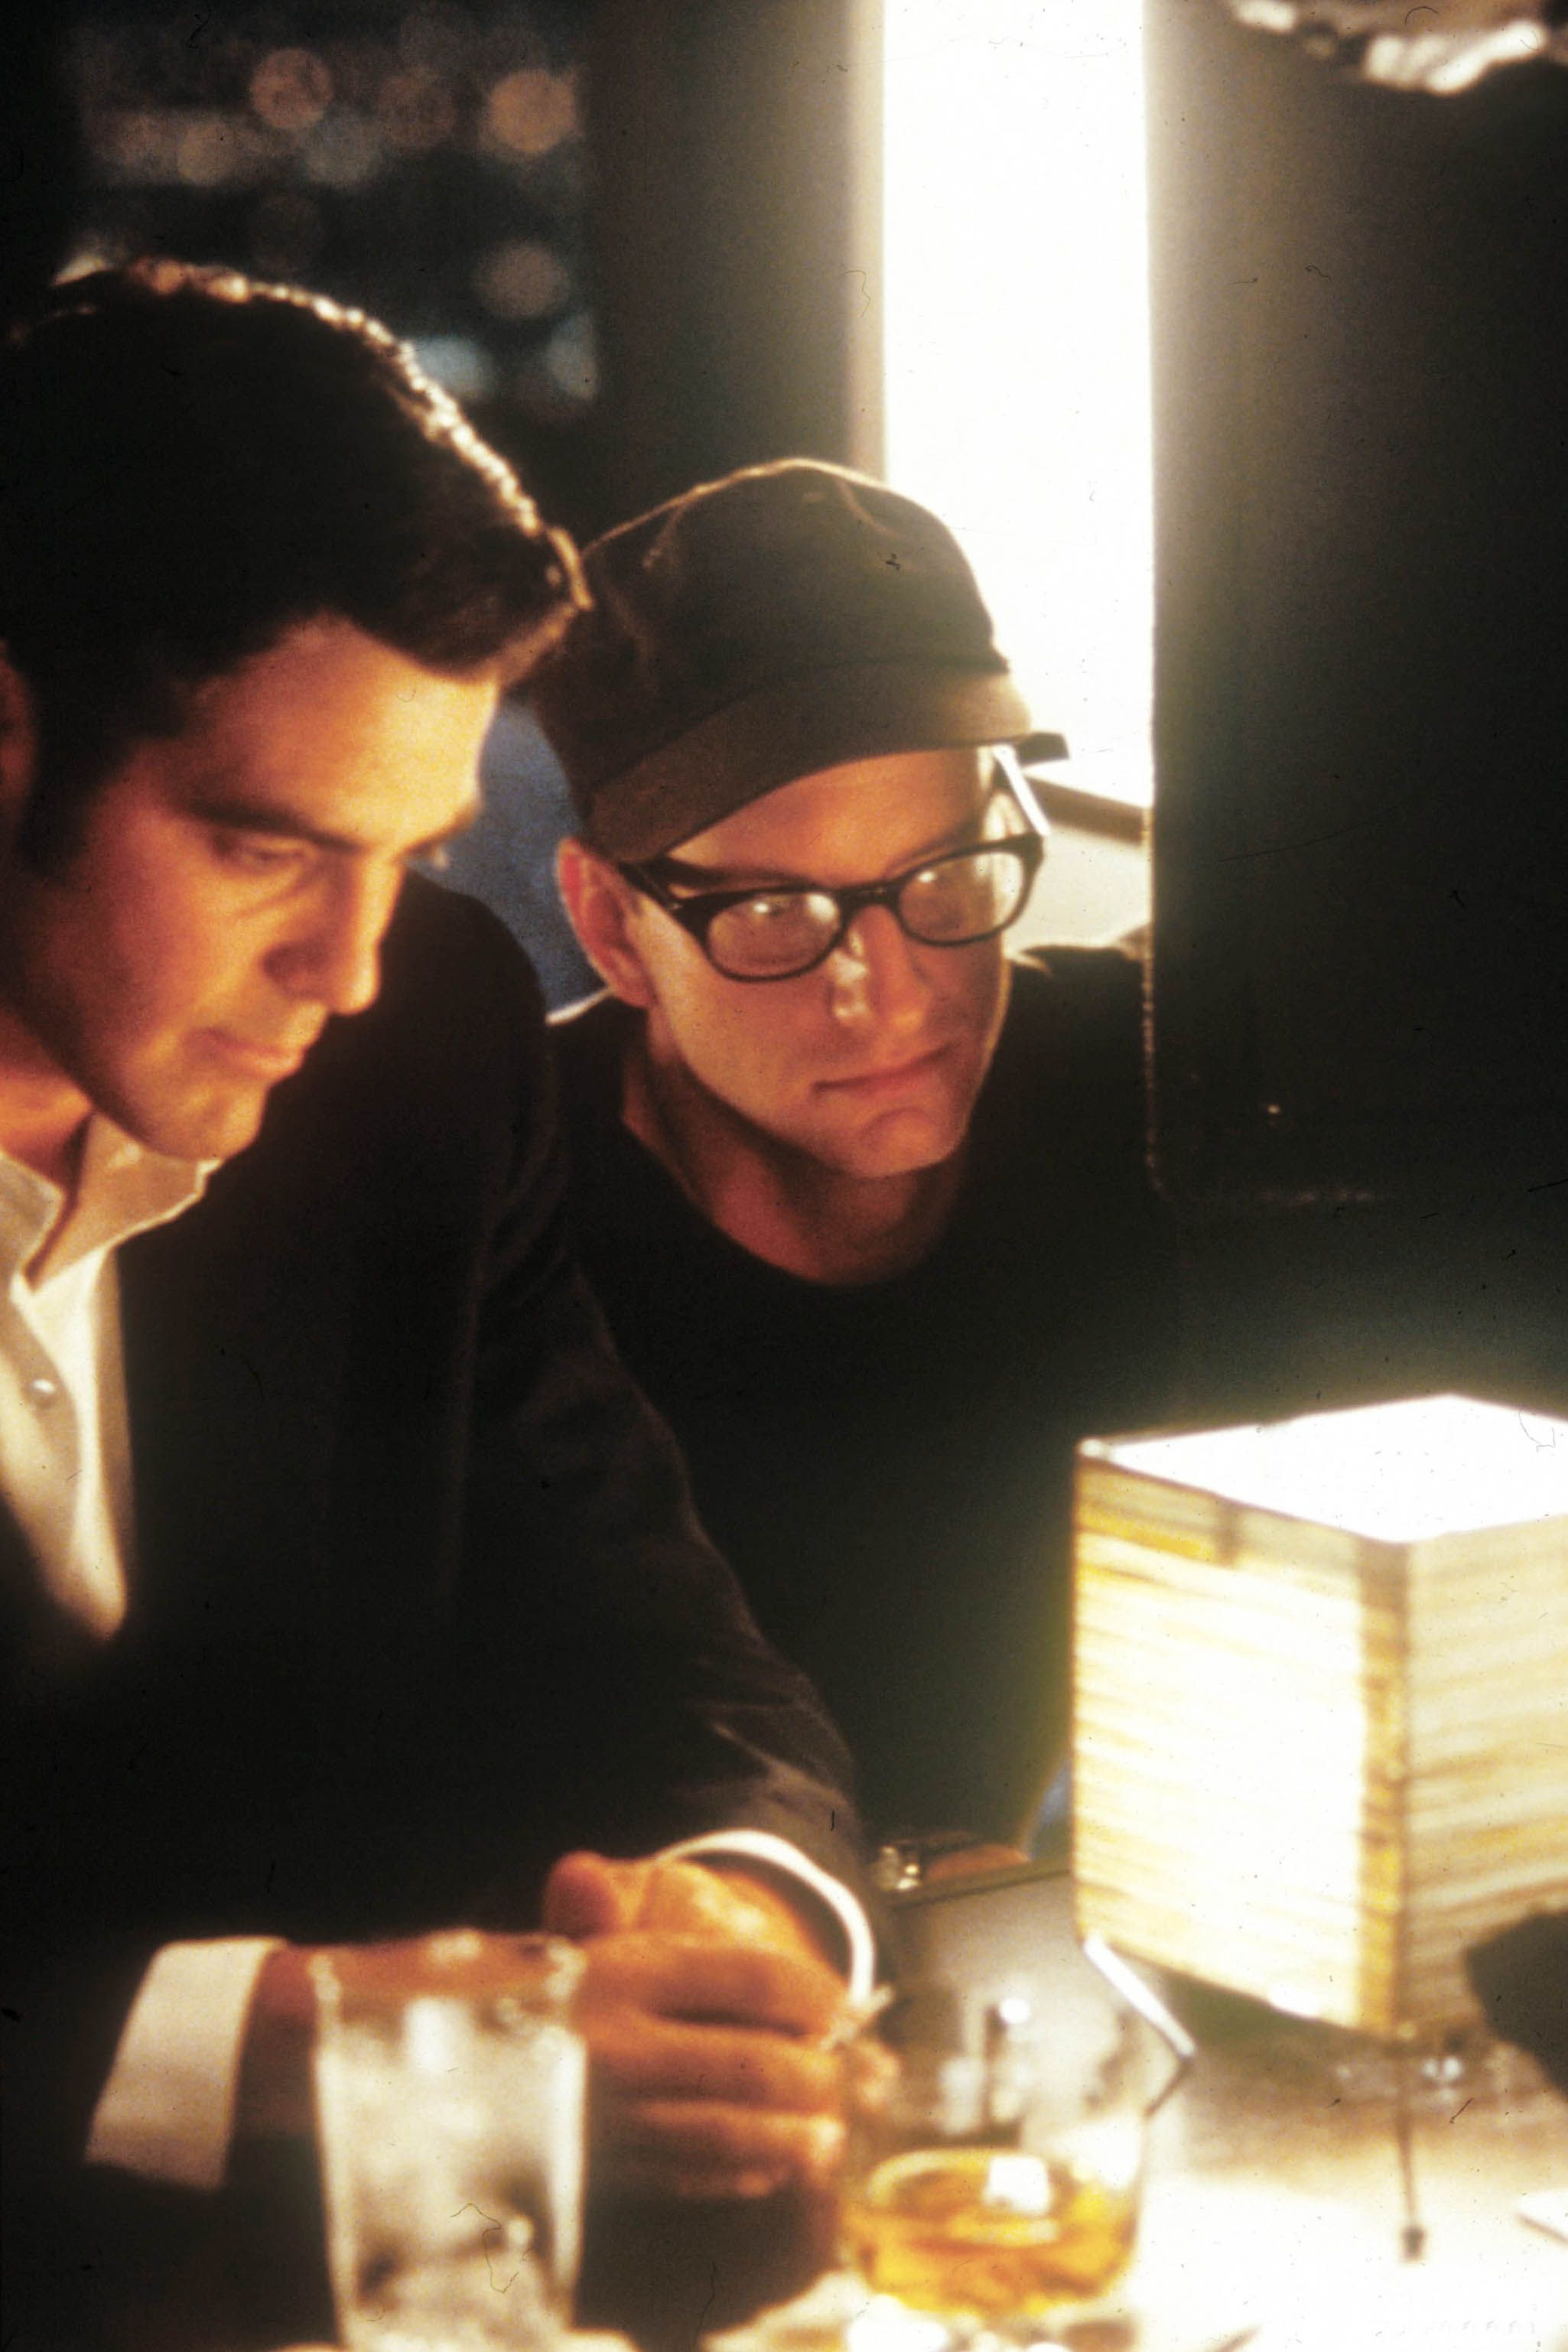 Steven Soderbergh directing George Clooney in a scene from Out of Sight in 1998.